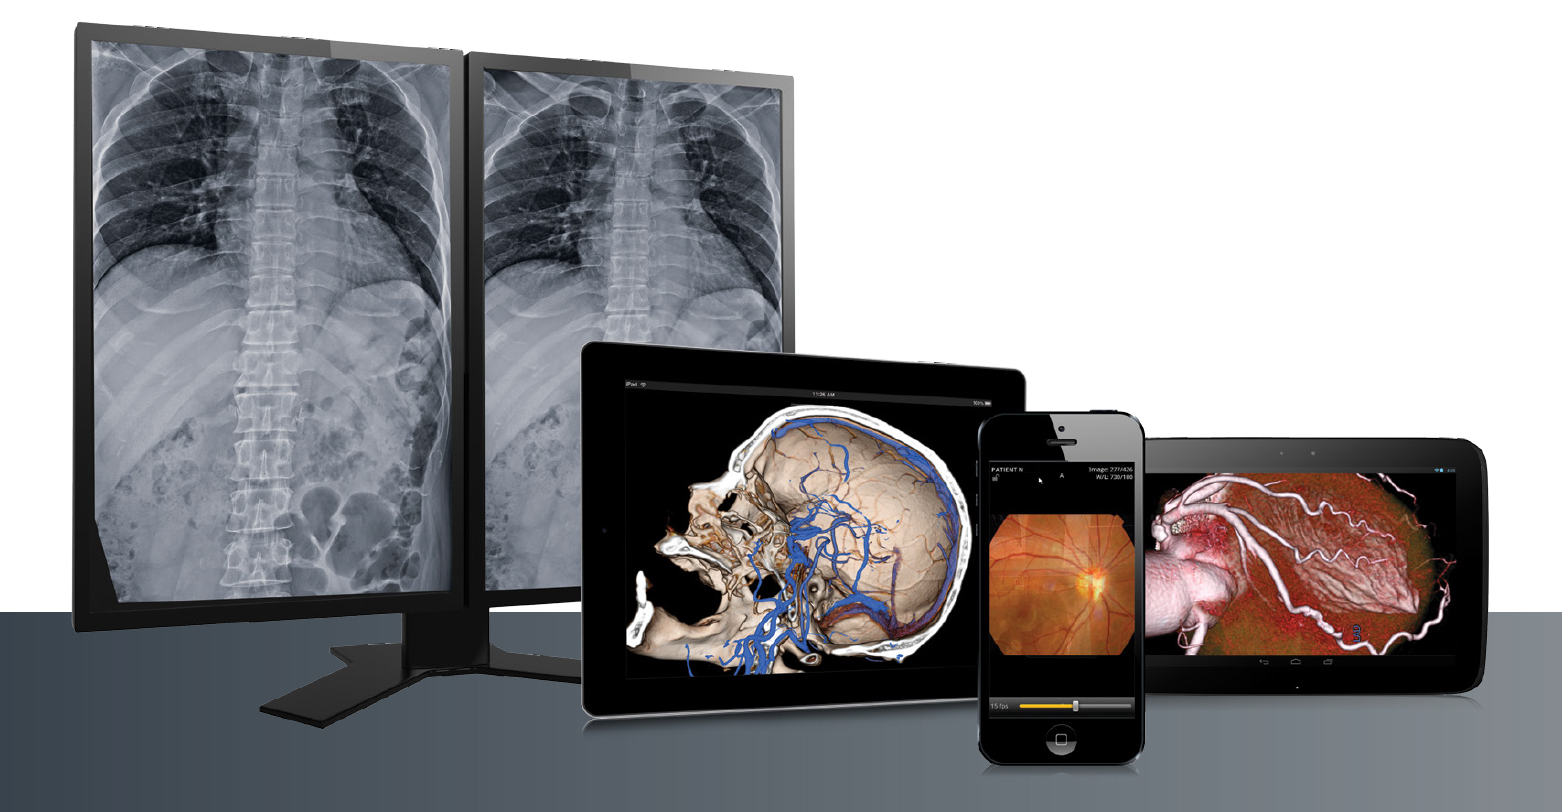 [photo] Images of lungs, skull, heart and eyes on computer and mobile screens